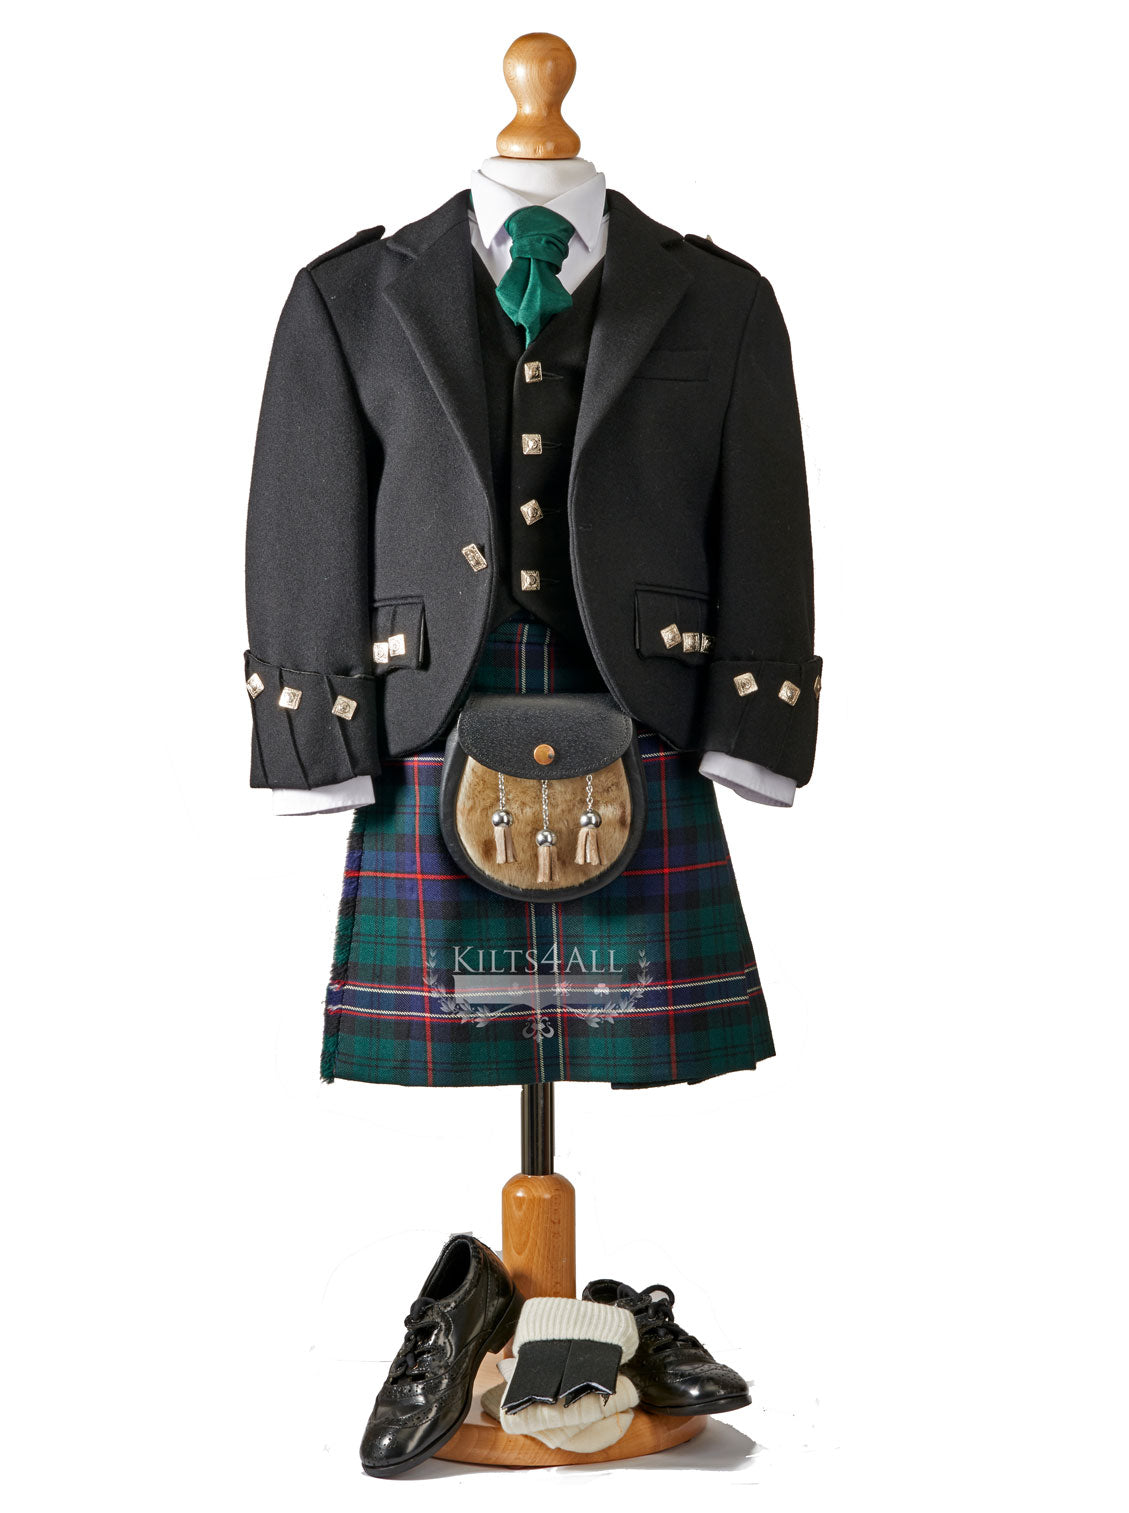 Boys Tartan Kilt Outfit to Hire - Traditional Black Argyll Jacket & Waistcoat